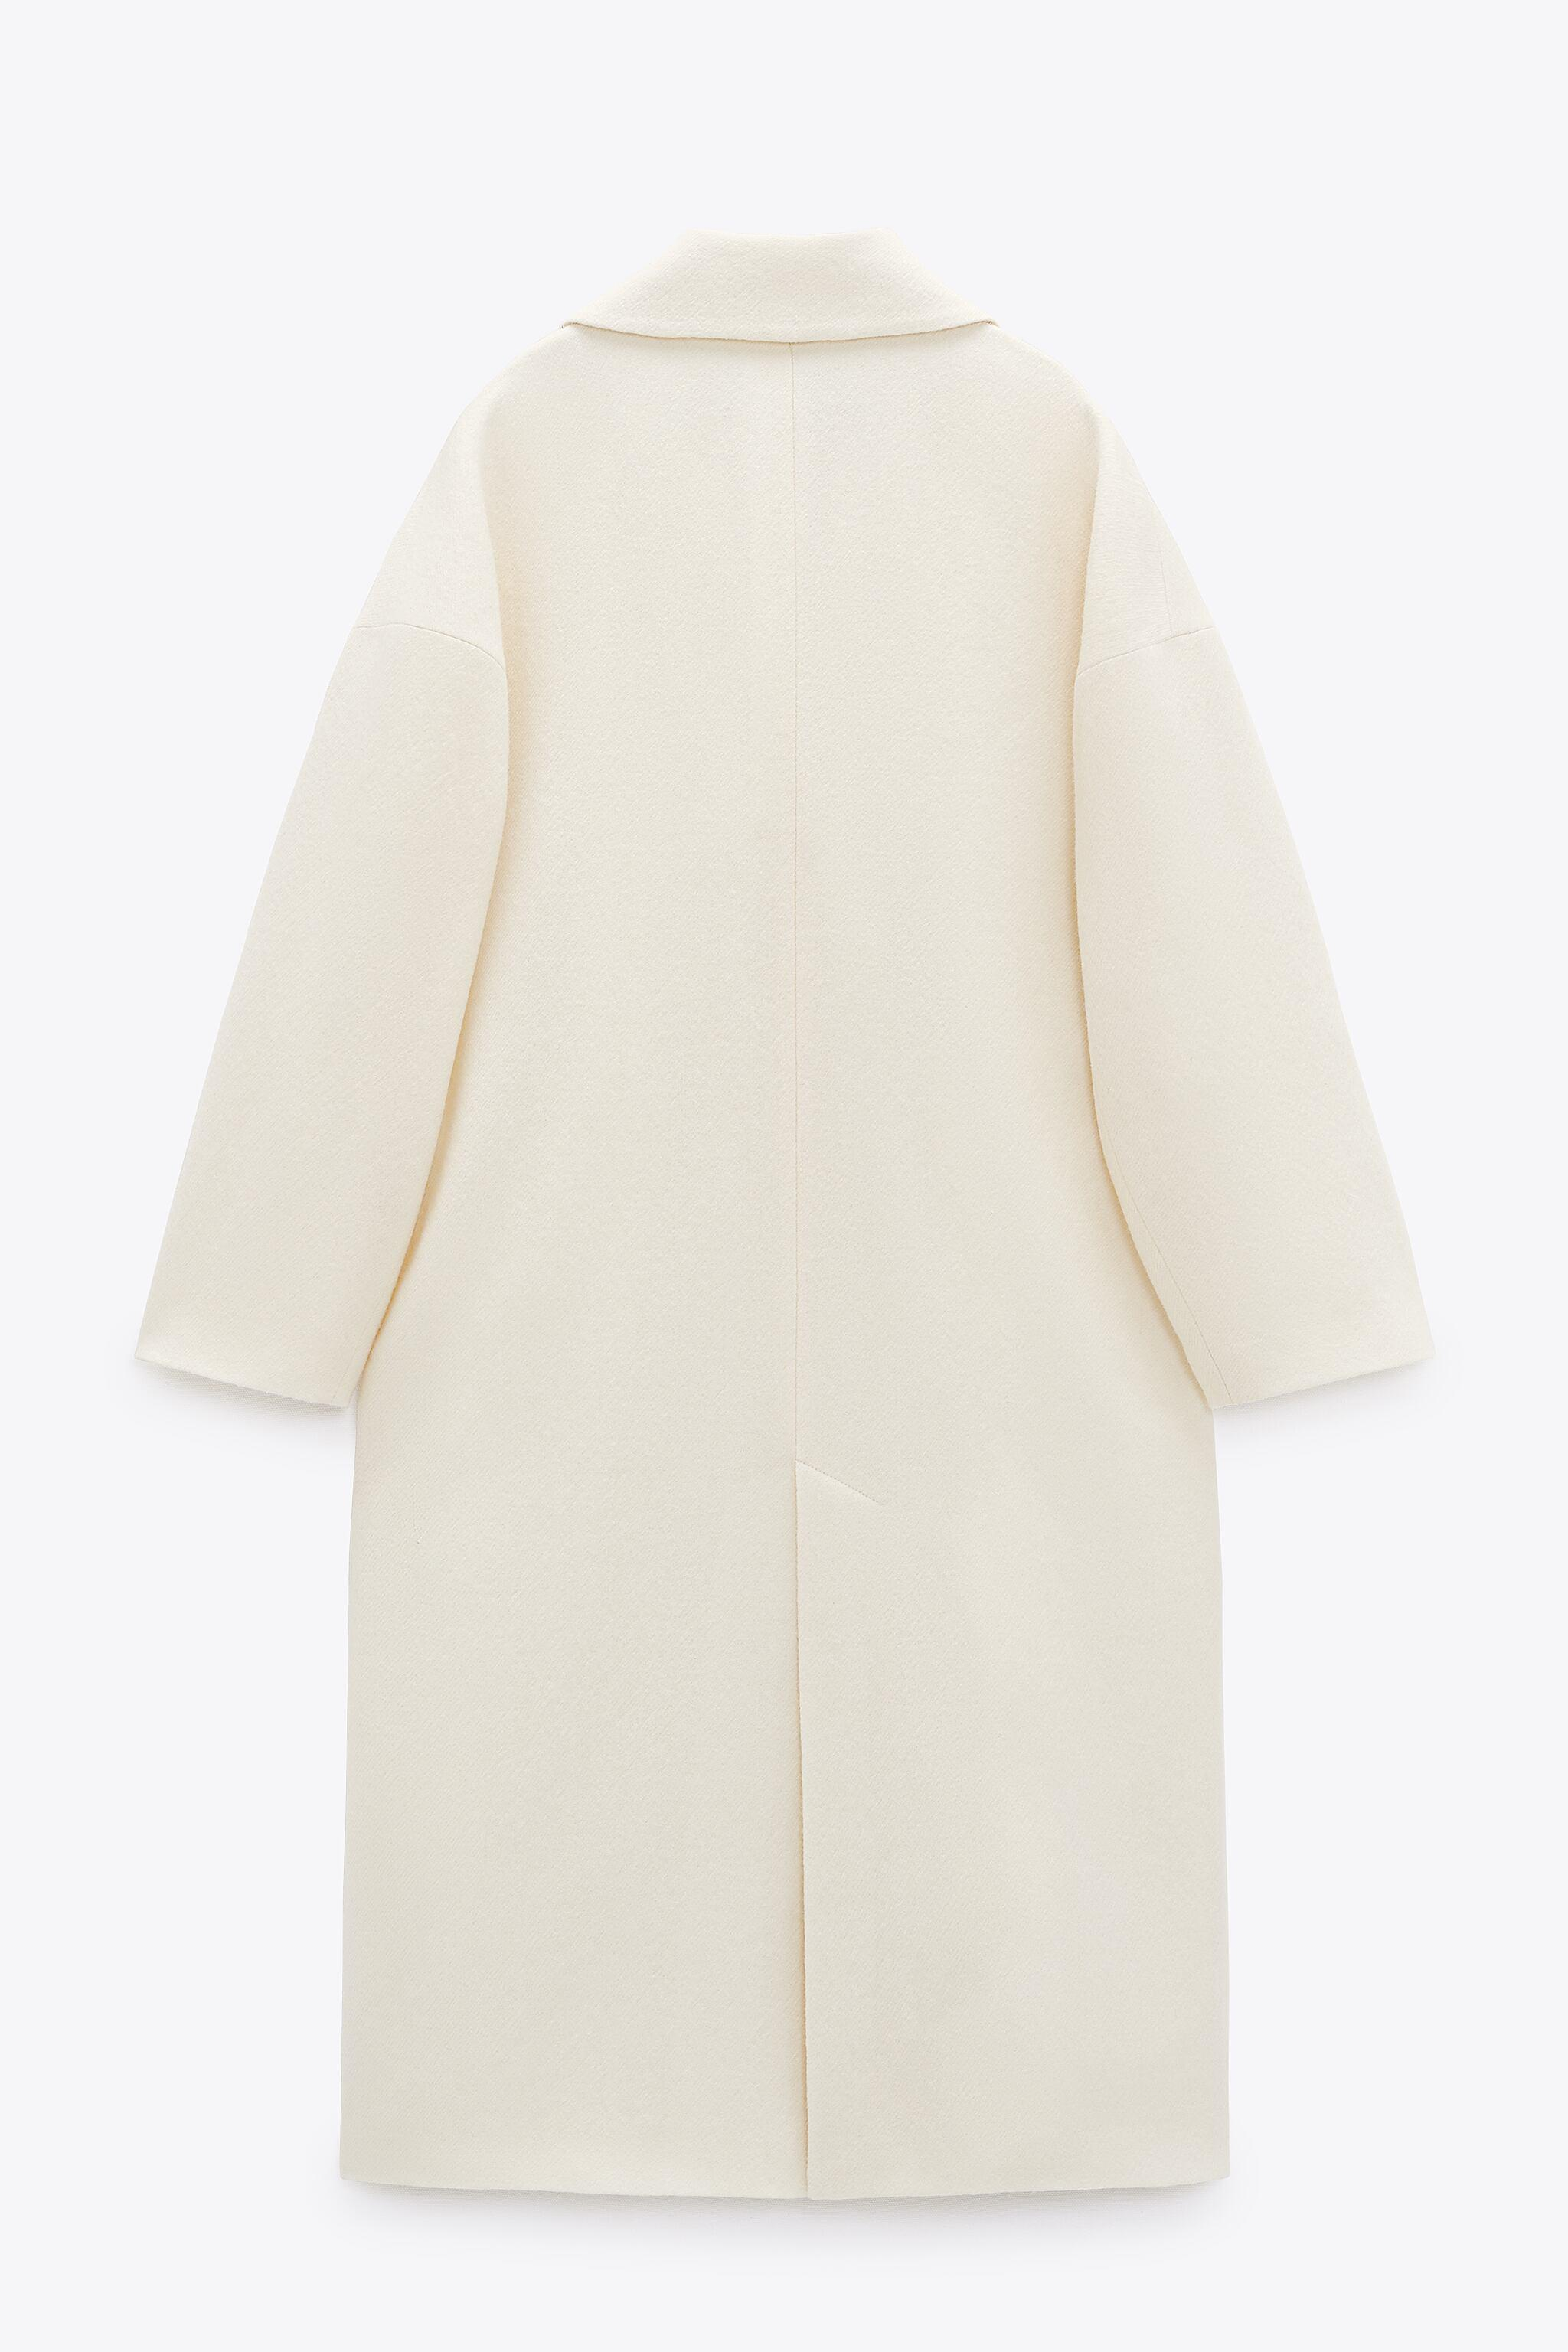 OVERSIZED WOOL COAT LIMITED EDITION 10